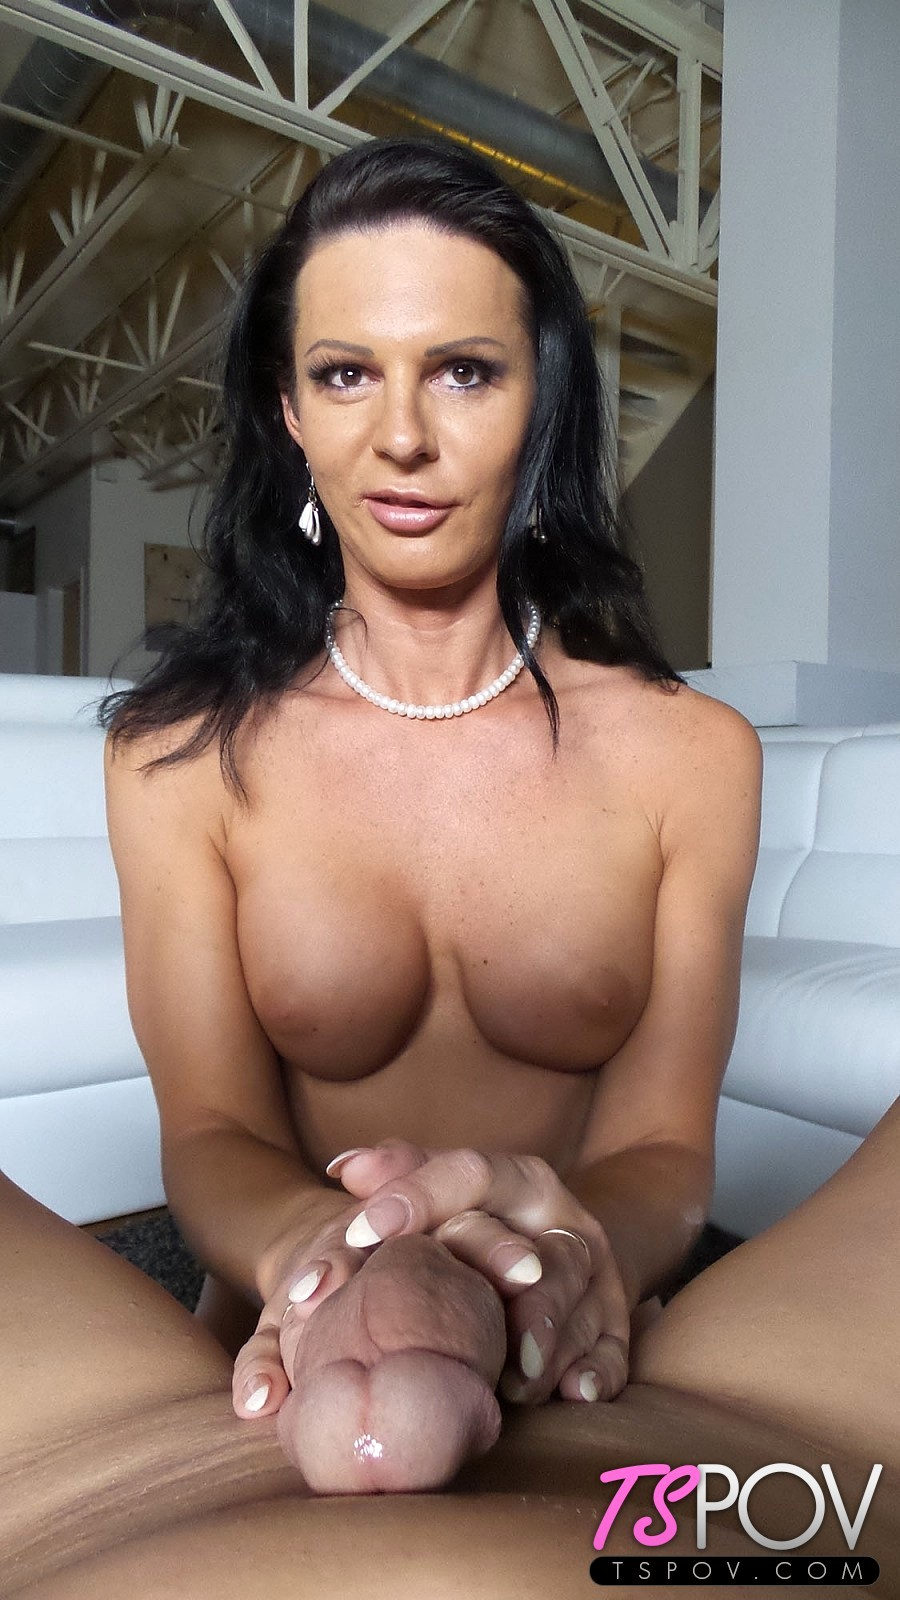 Lina Cavalli Is A Racy Russian TS That Is A Very Experi